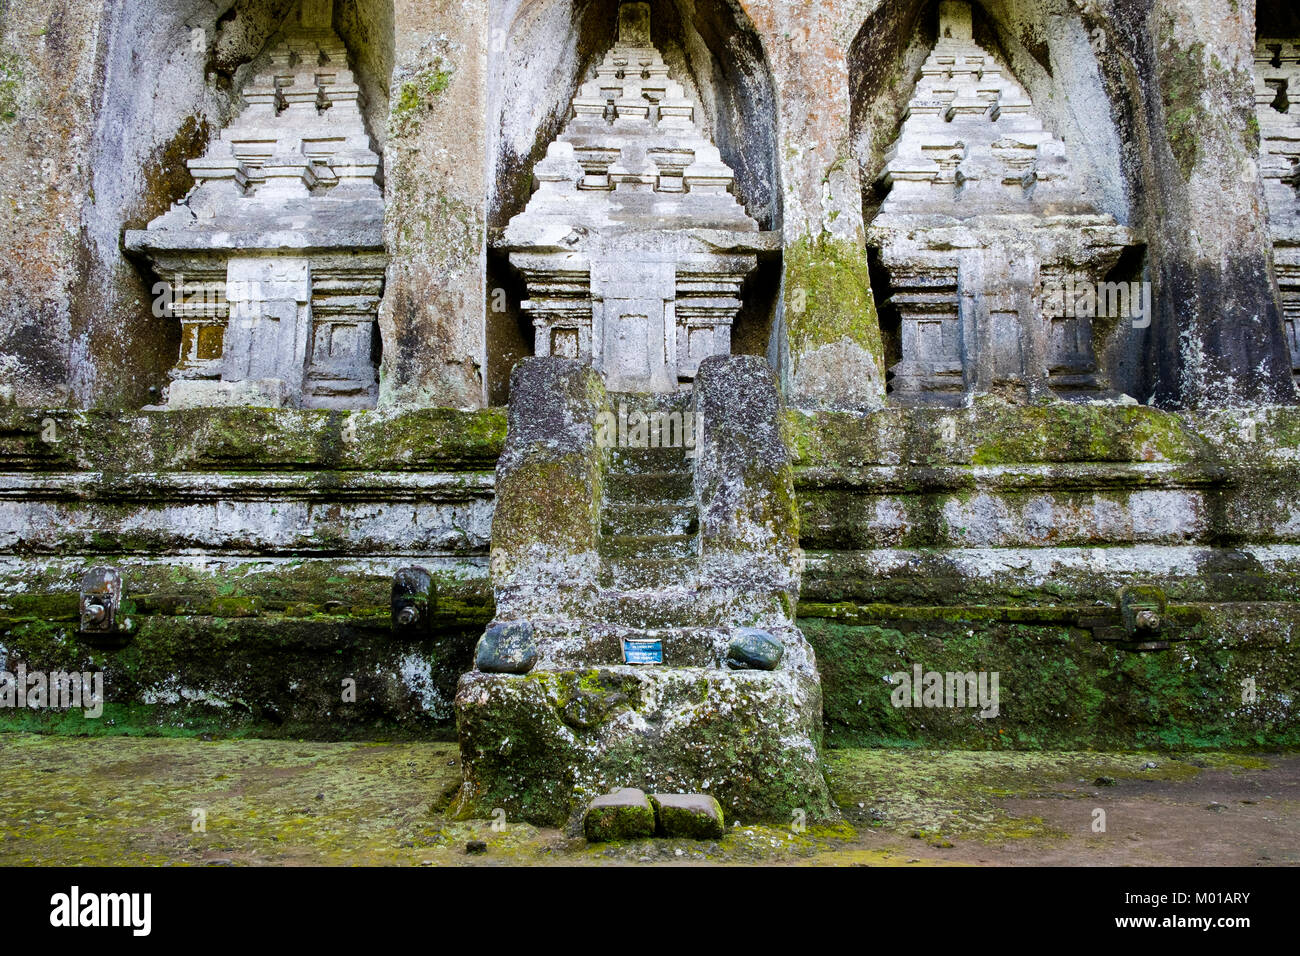 Rock-cut shrines from the group of five, Gunung Kawi complex in Tampaksiring, Bali, Indonesia. - Stock Image